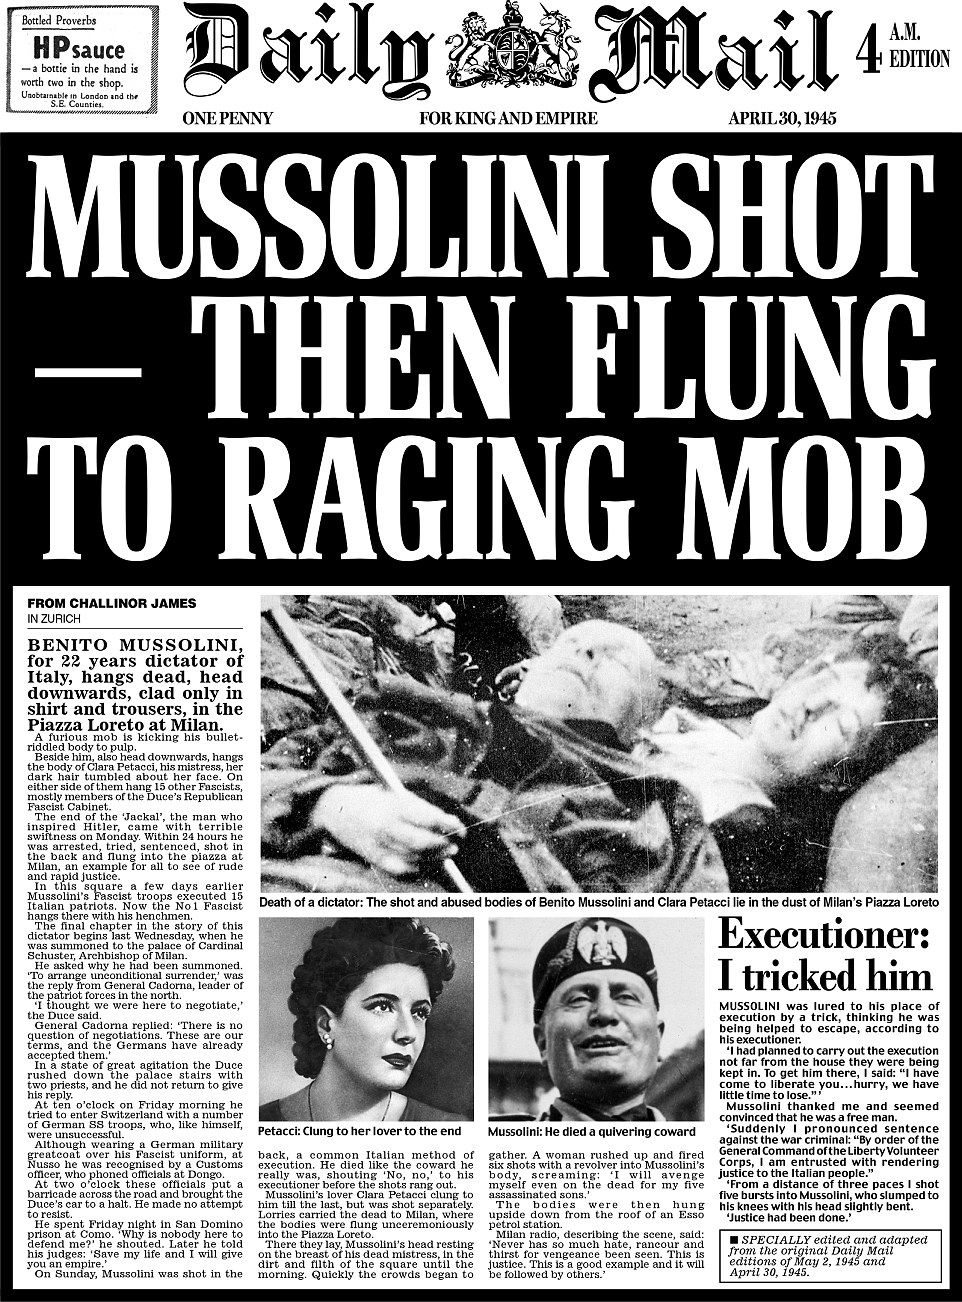 Daily Mail pages from day Adolf Hitler died 70 years ago this week